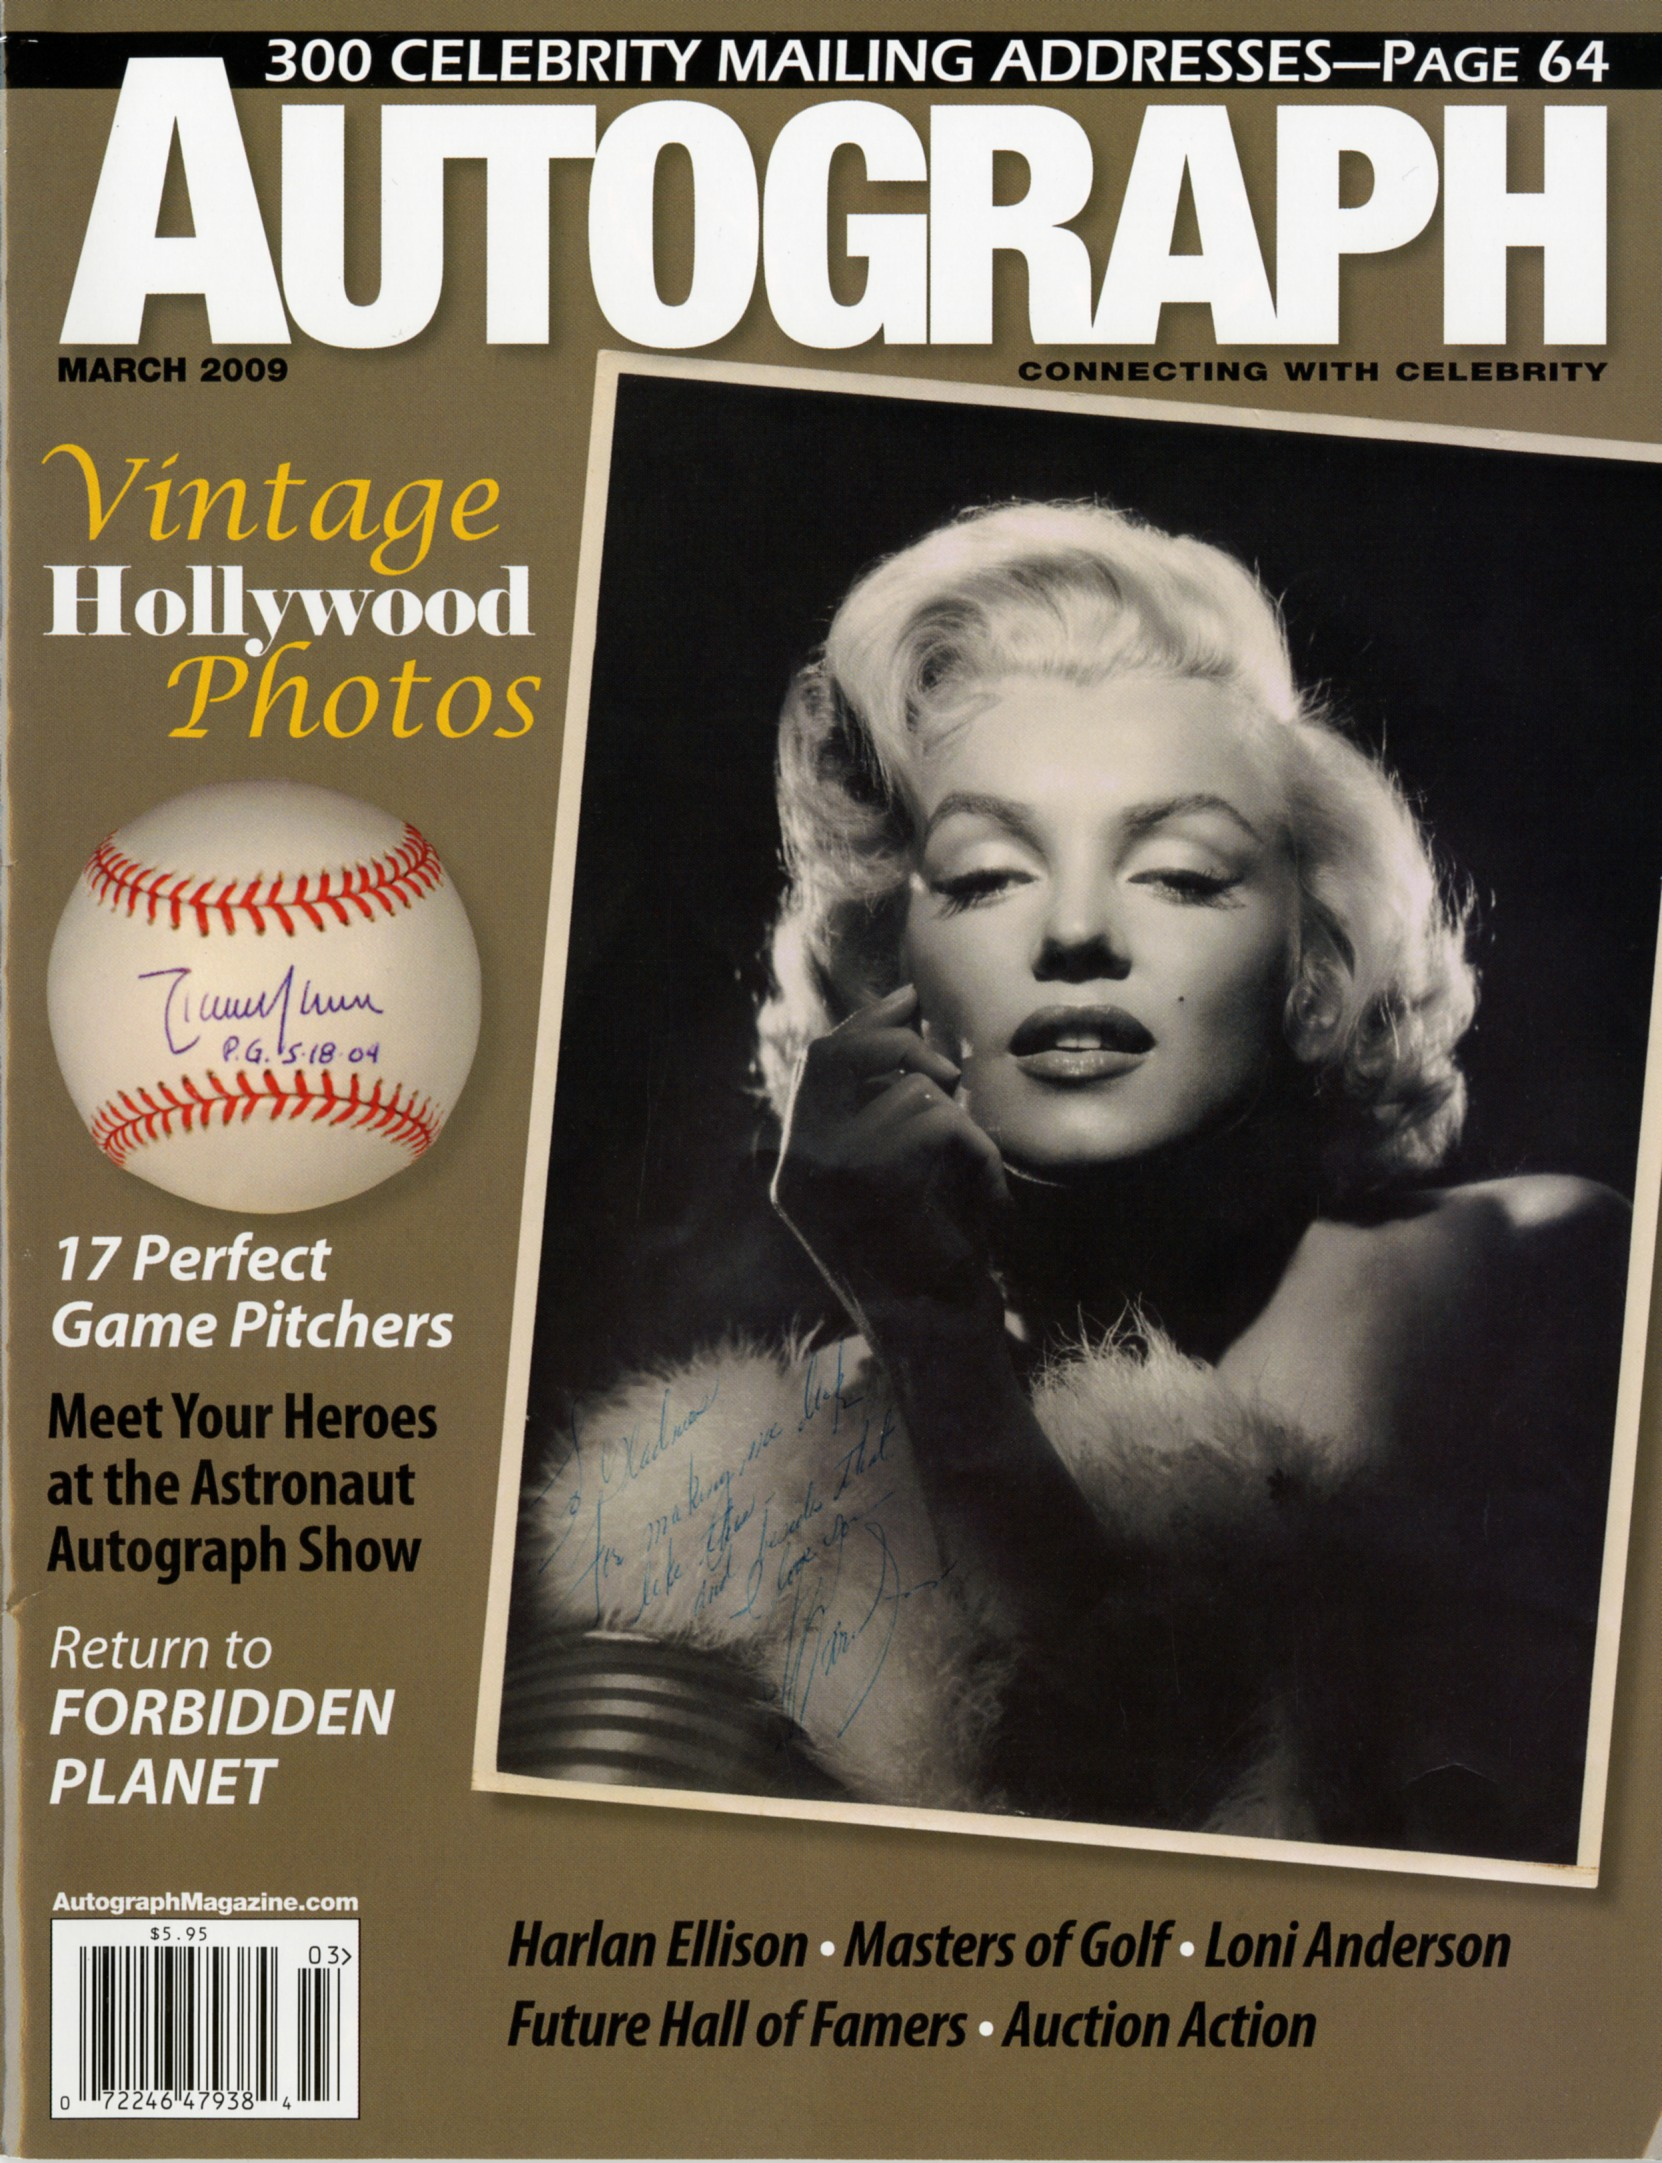 autograph magazine cover with vintage hollywood photos, a black and white photo of marilyn monroe and a signed baseball